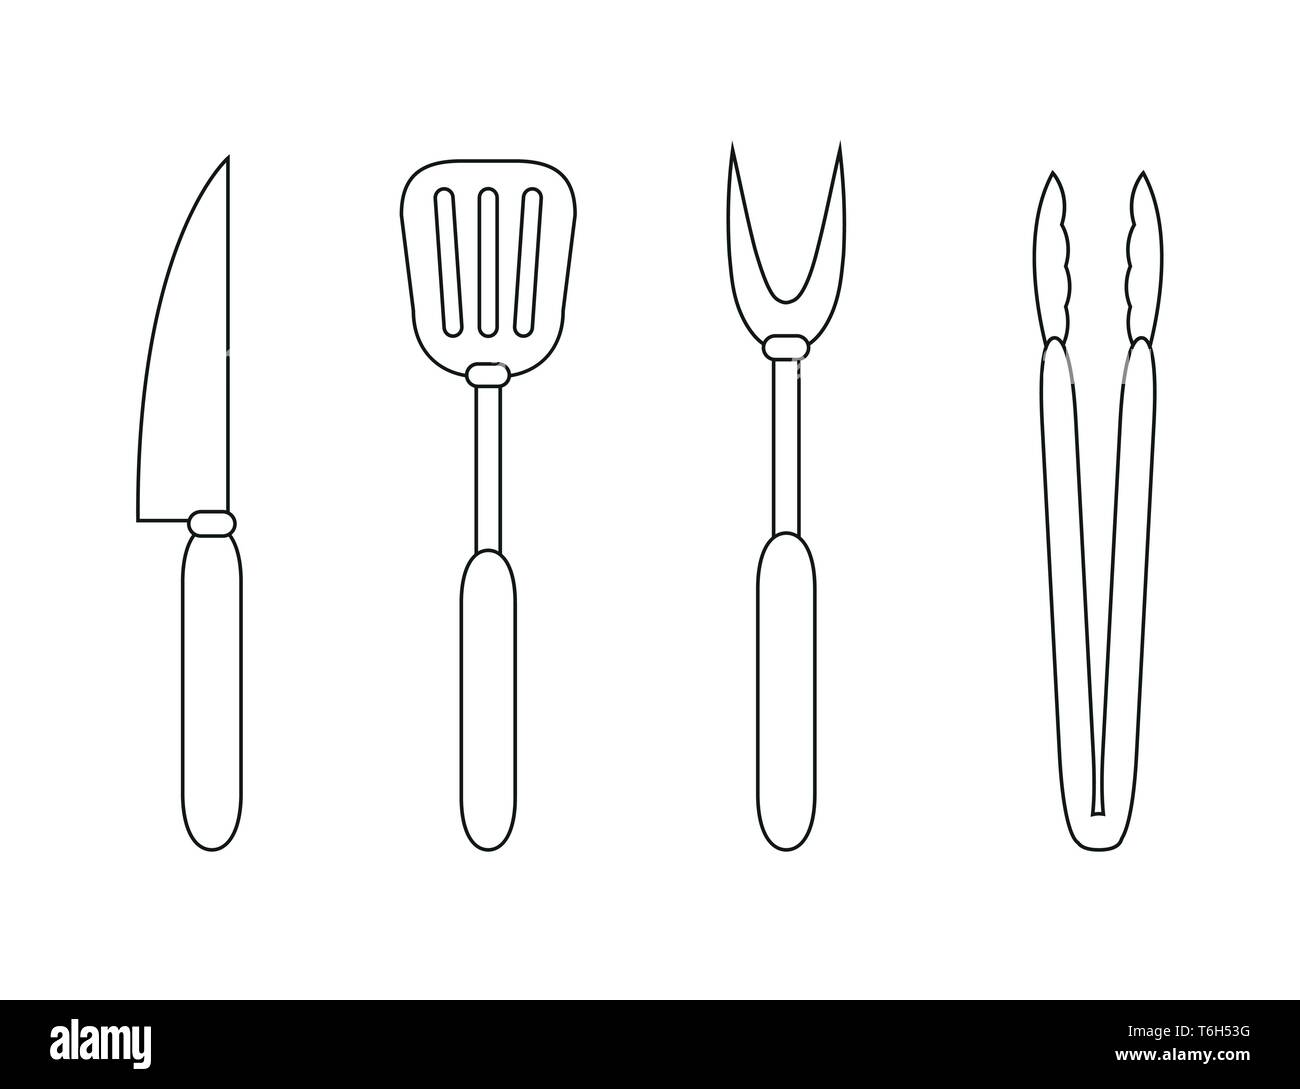 barbecue cutlery outline drawing isolated on white background